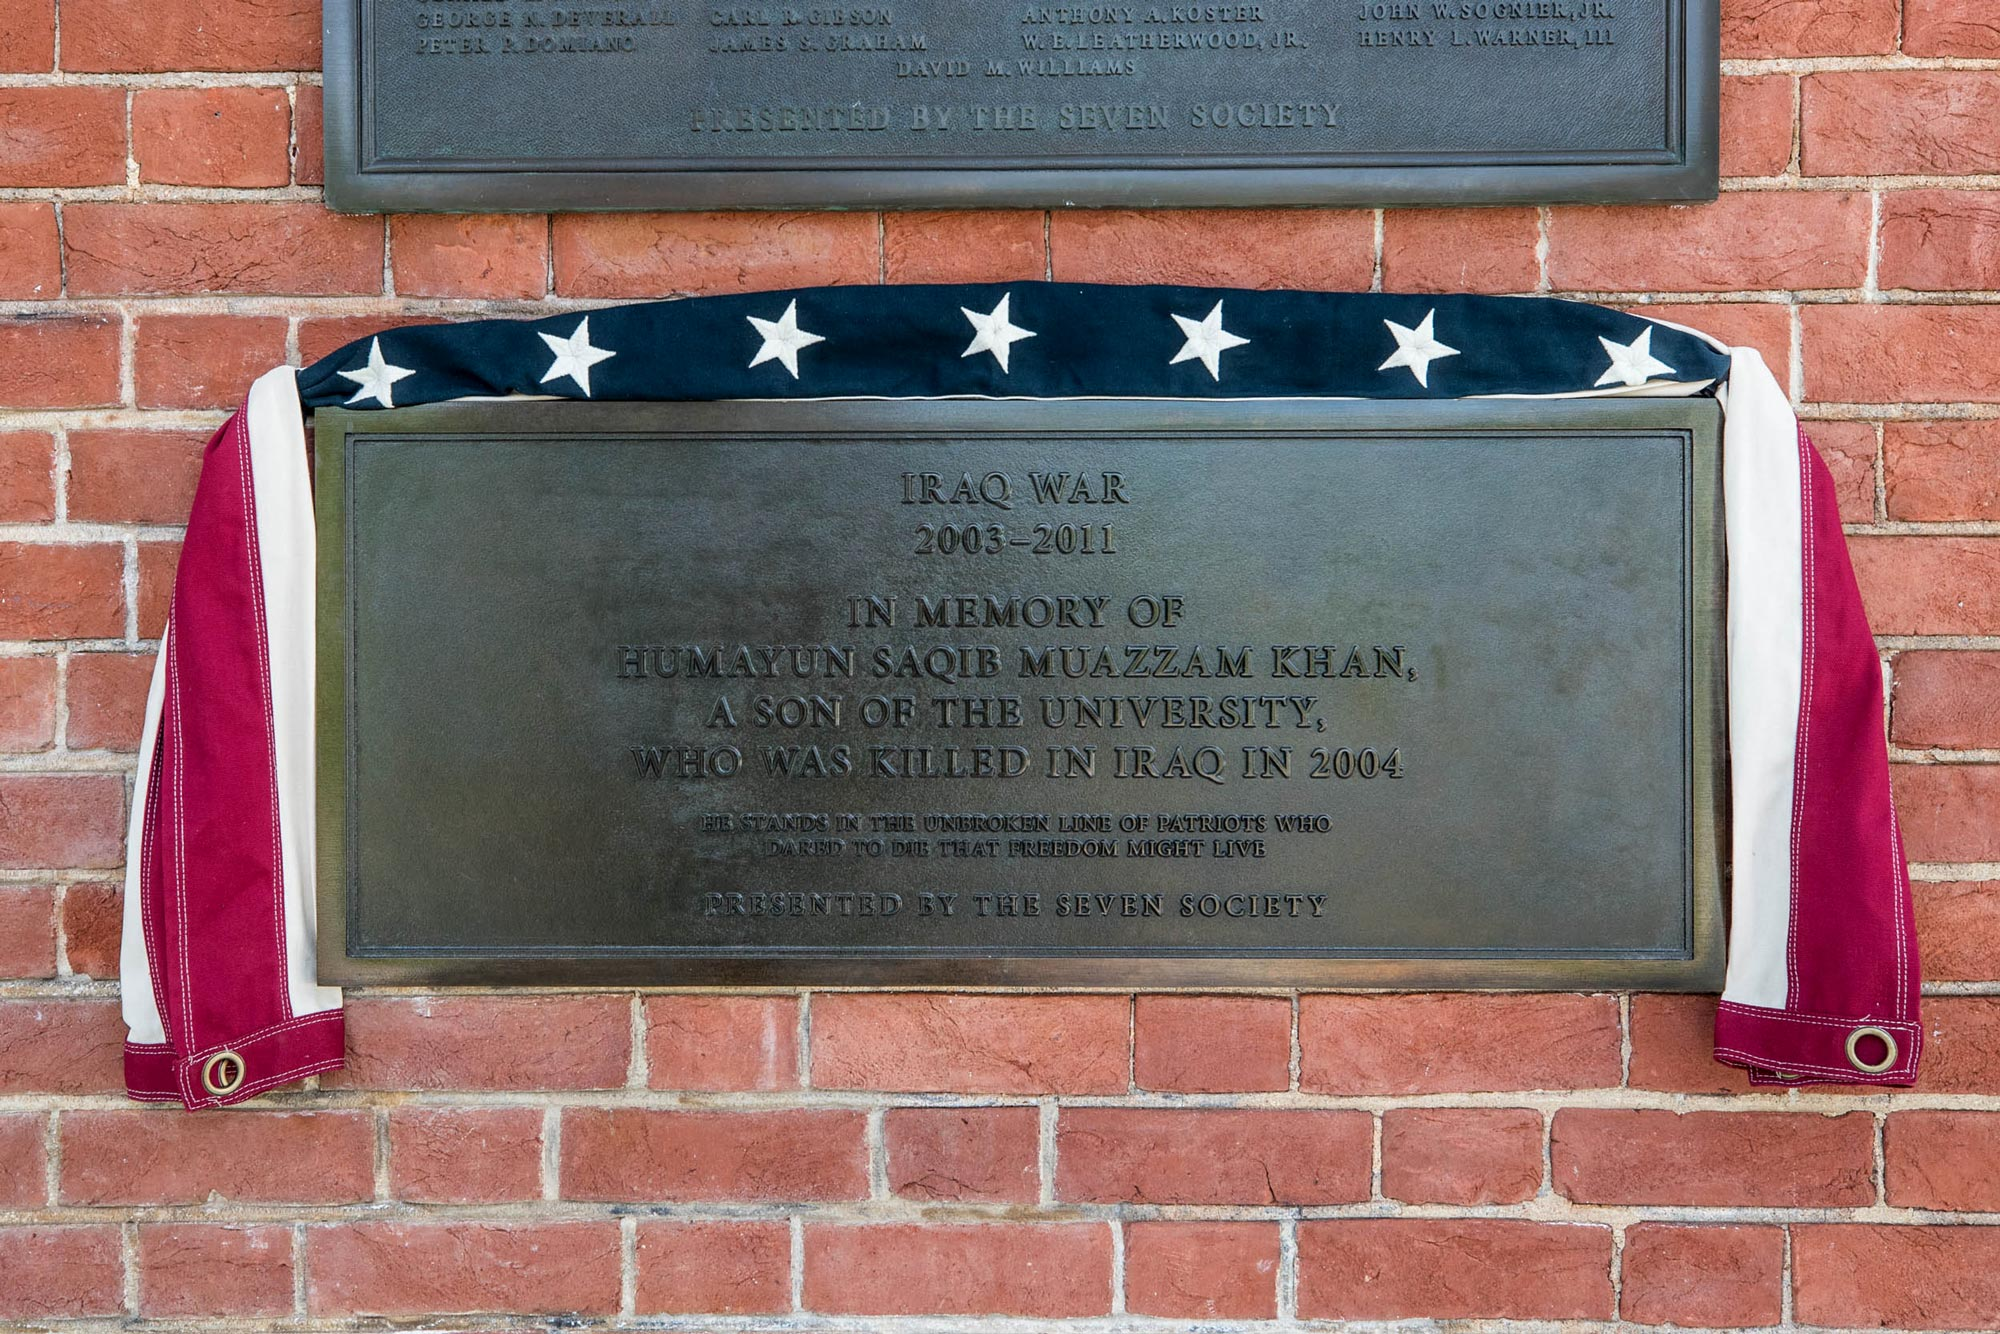 The plaque honoring Khan joins others on the Rotunda wall placed in memory of UVA graduates who fell in other wars.